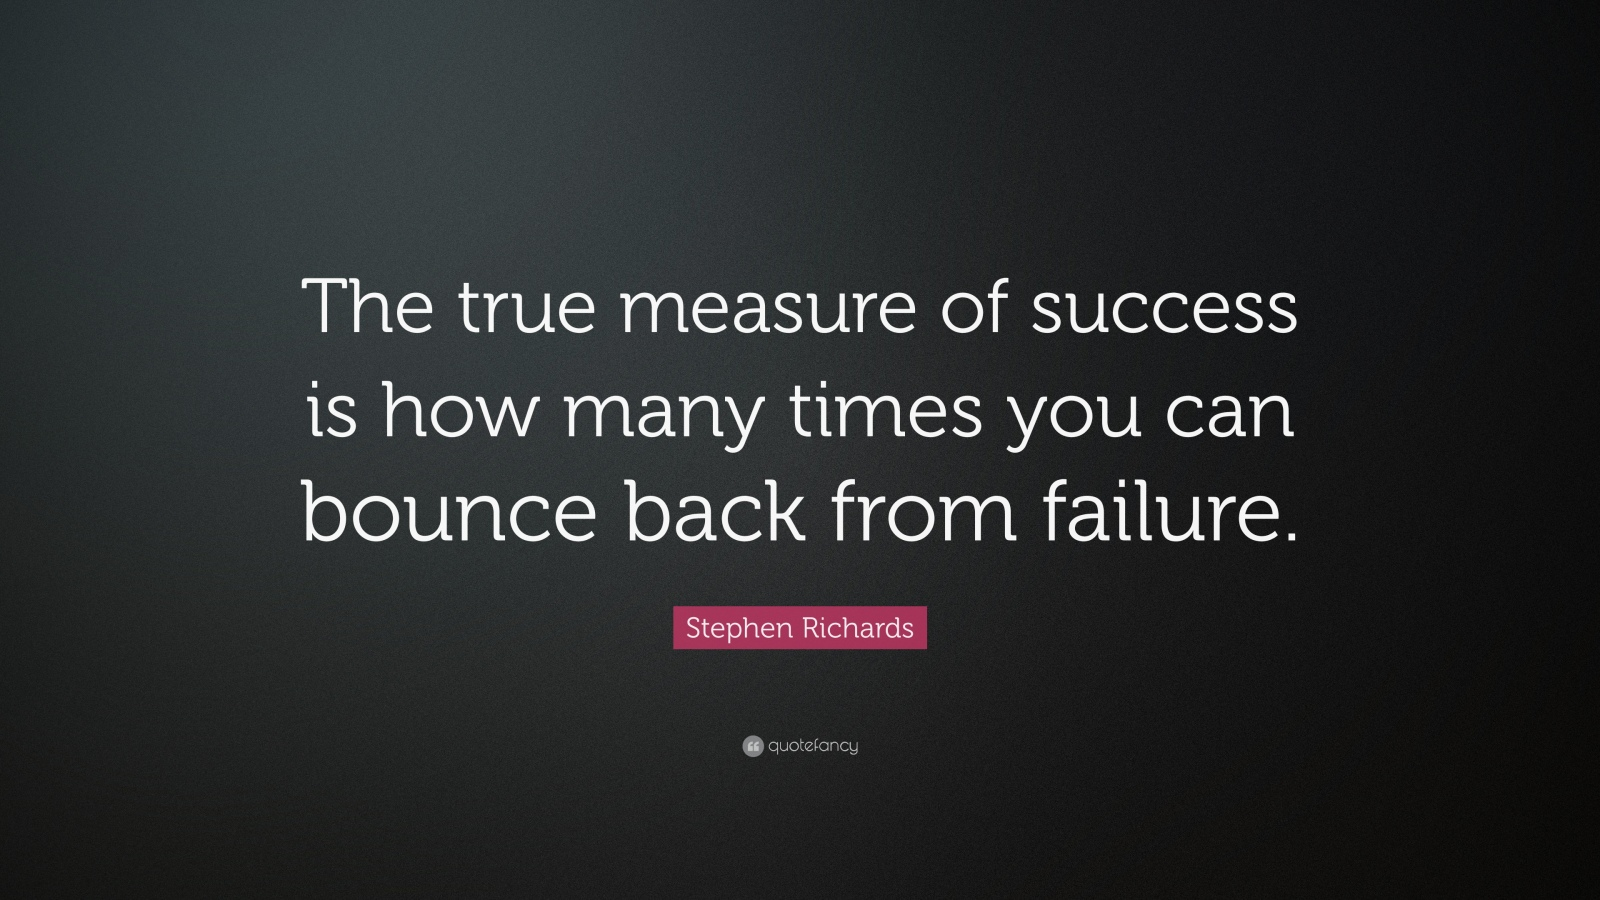 Success Quotes: Quotes About Measurement Of Success (24 Quotes